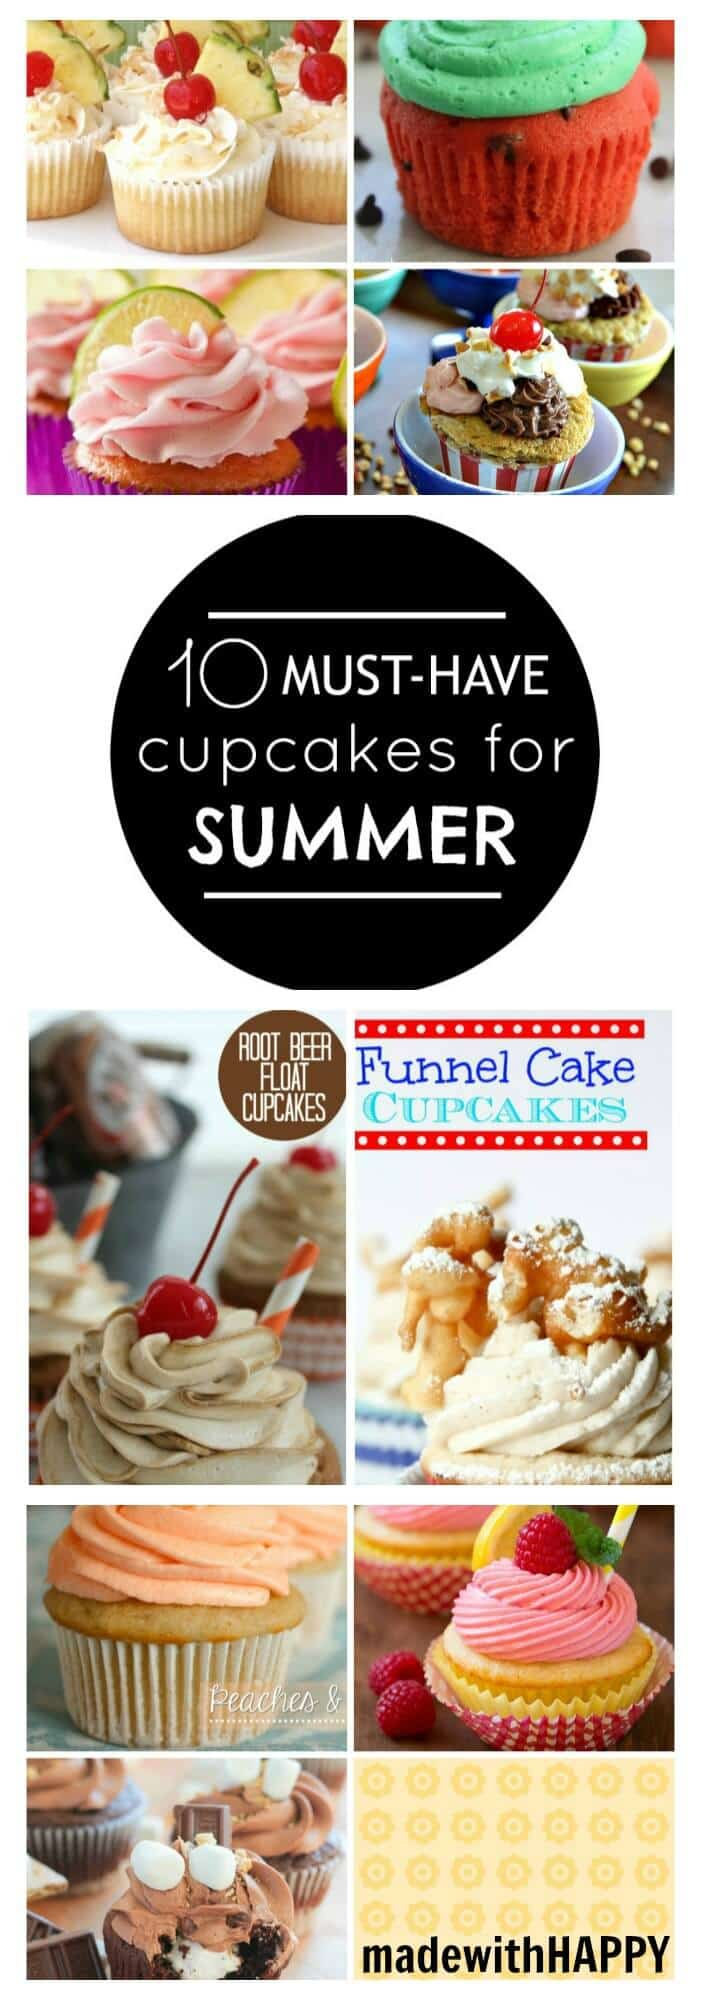 10 of the Must Have Summer Cupcake Ideas